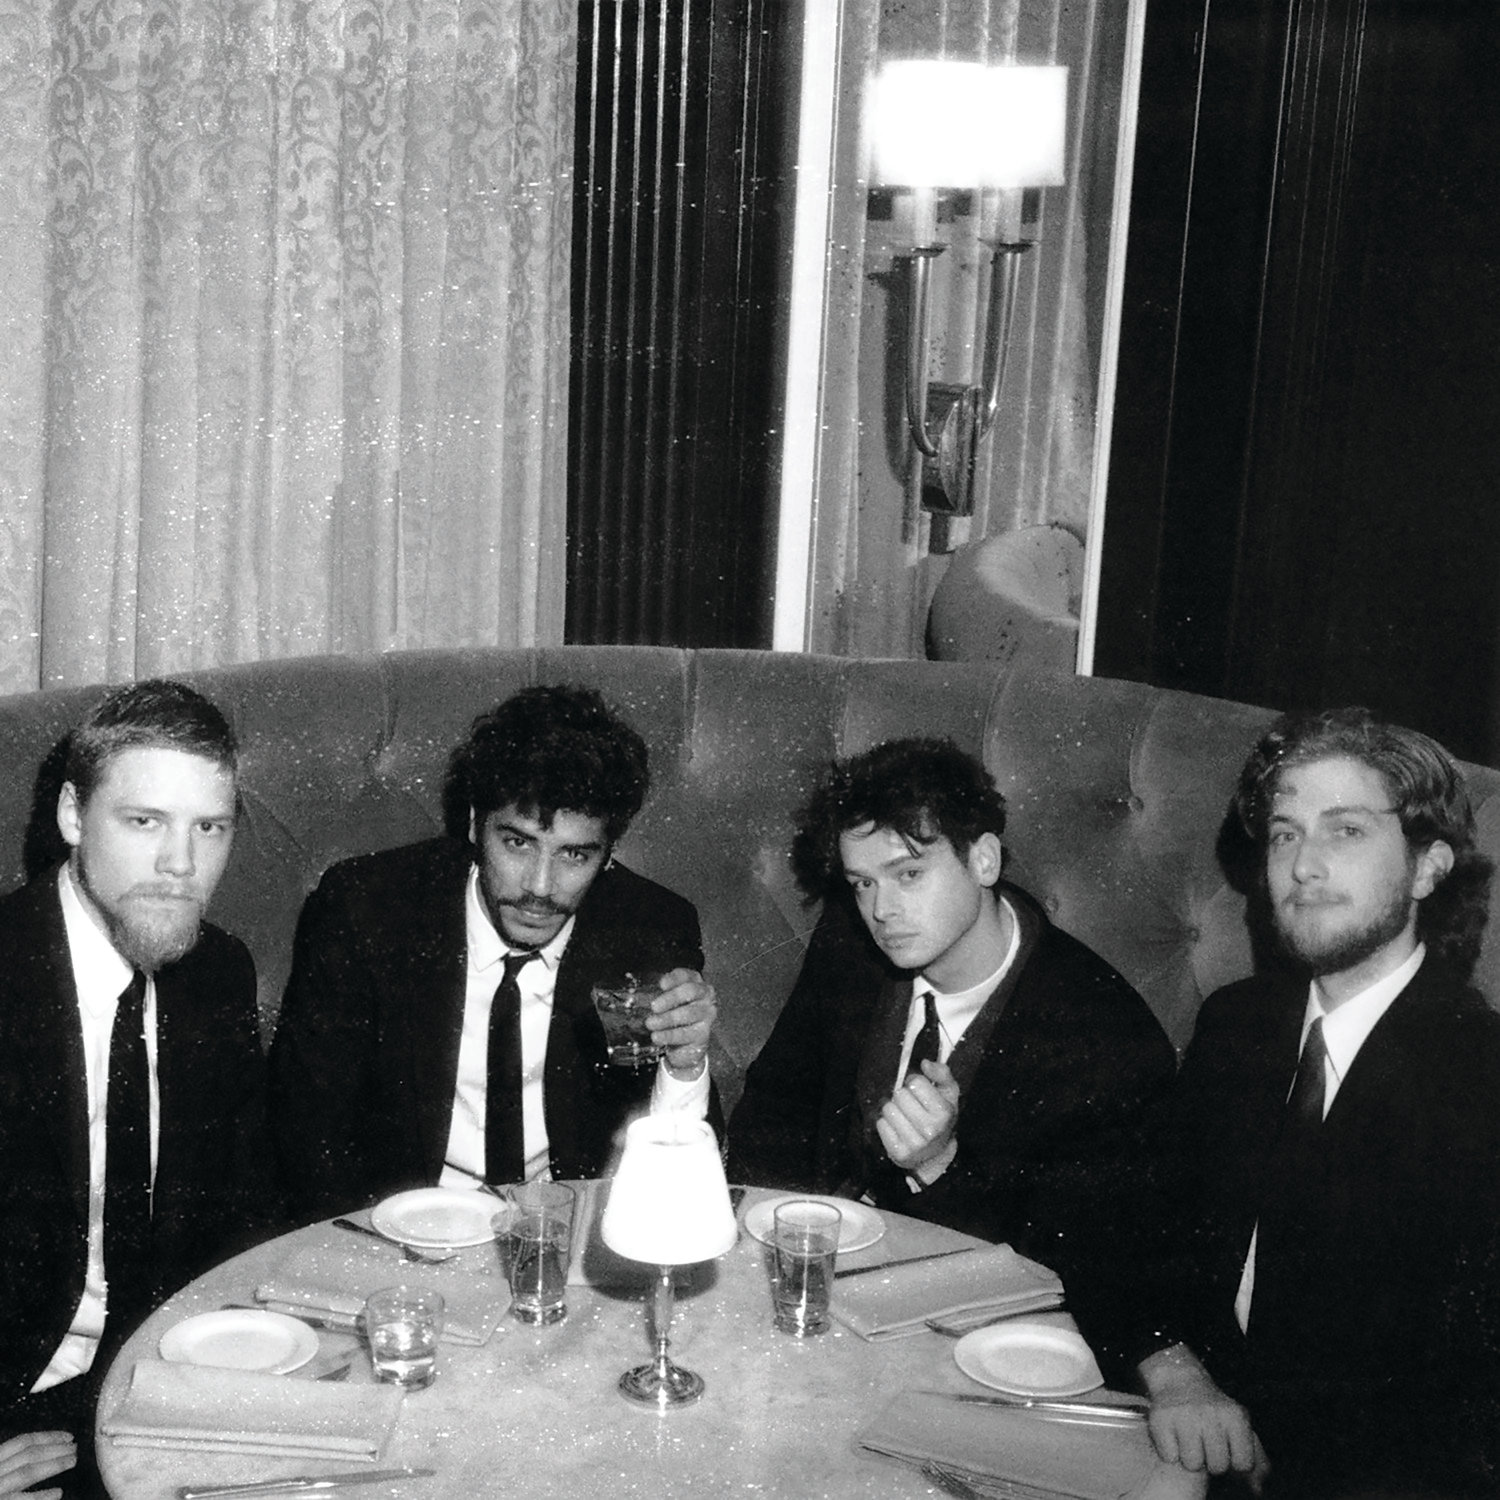 Left to right: Bryan Fielding, Rafay Rashid, Nick Politelli, and Ben Tucker of Ravi Shavi celebrate their new album Blackout Deluxe